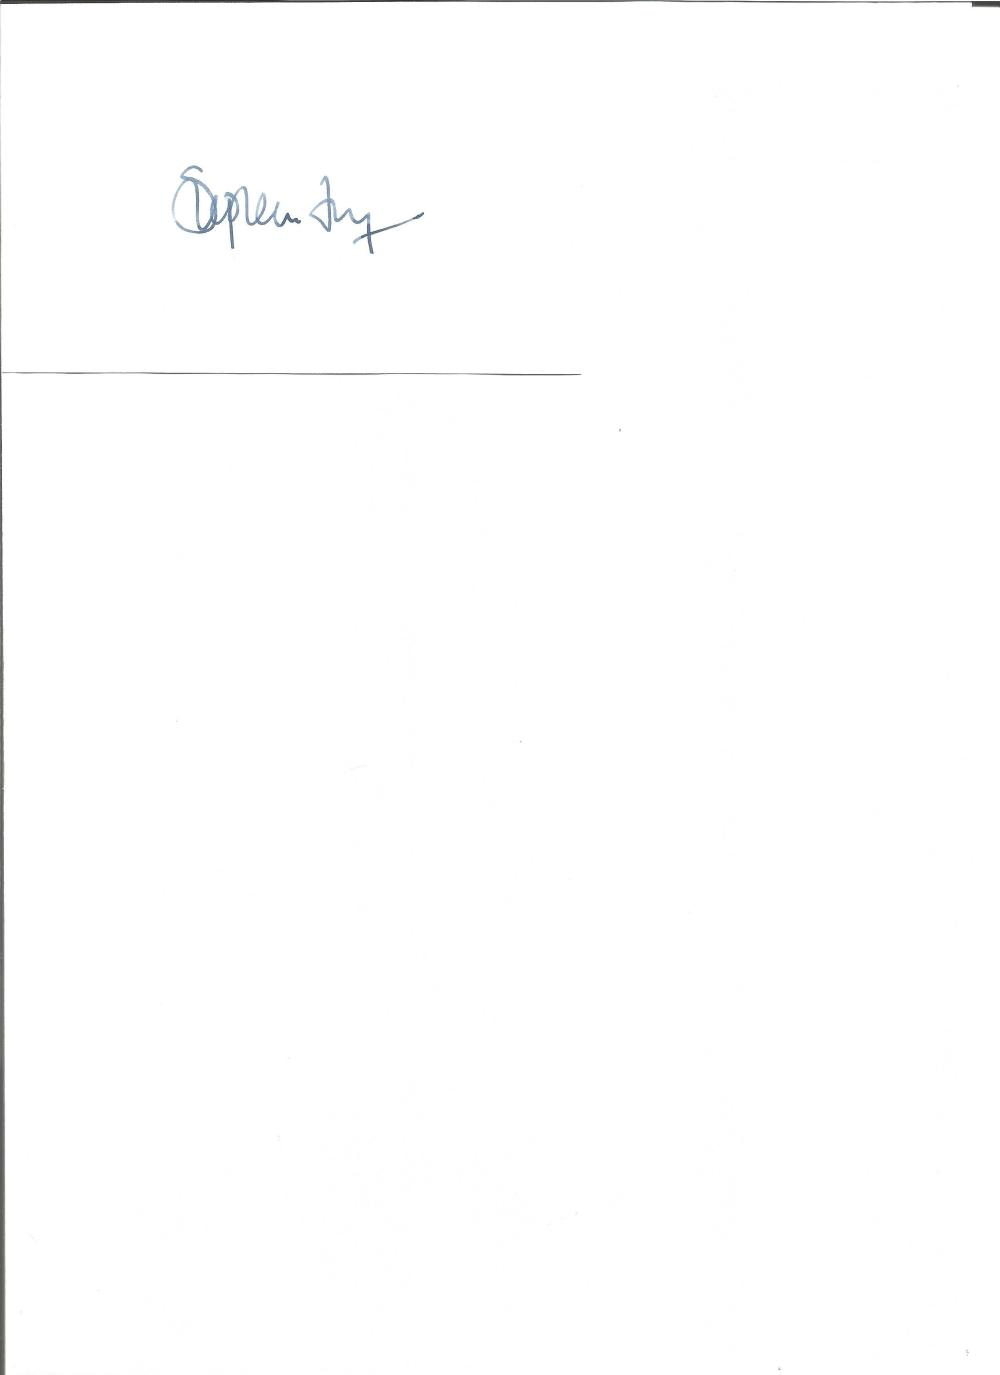 Stephen Fry signed white card. English comedian, actor and author. Good Condition. All signed pieces